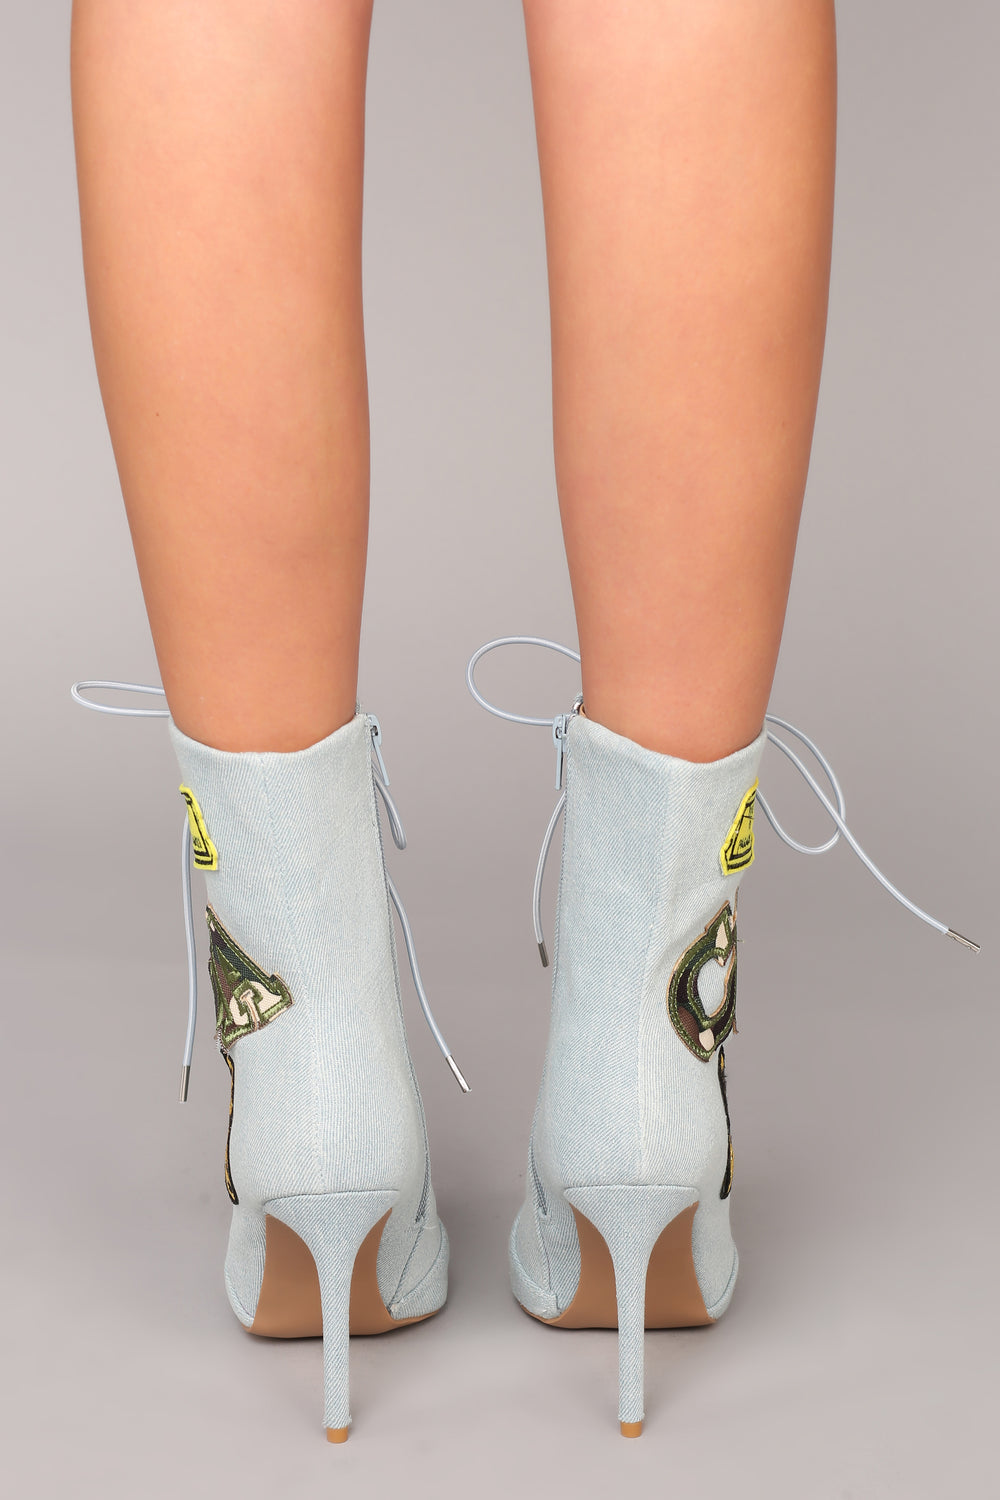 Flirty Flight Bootie - Denim